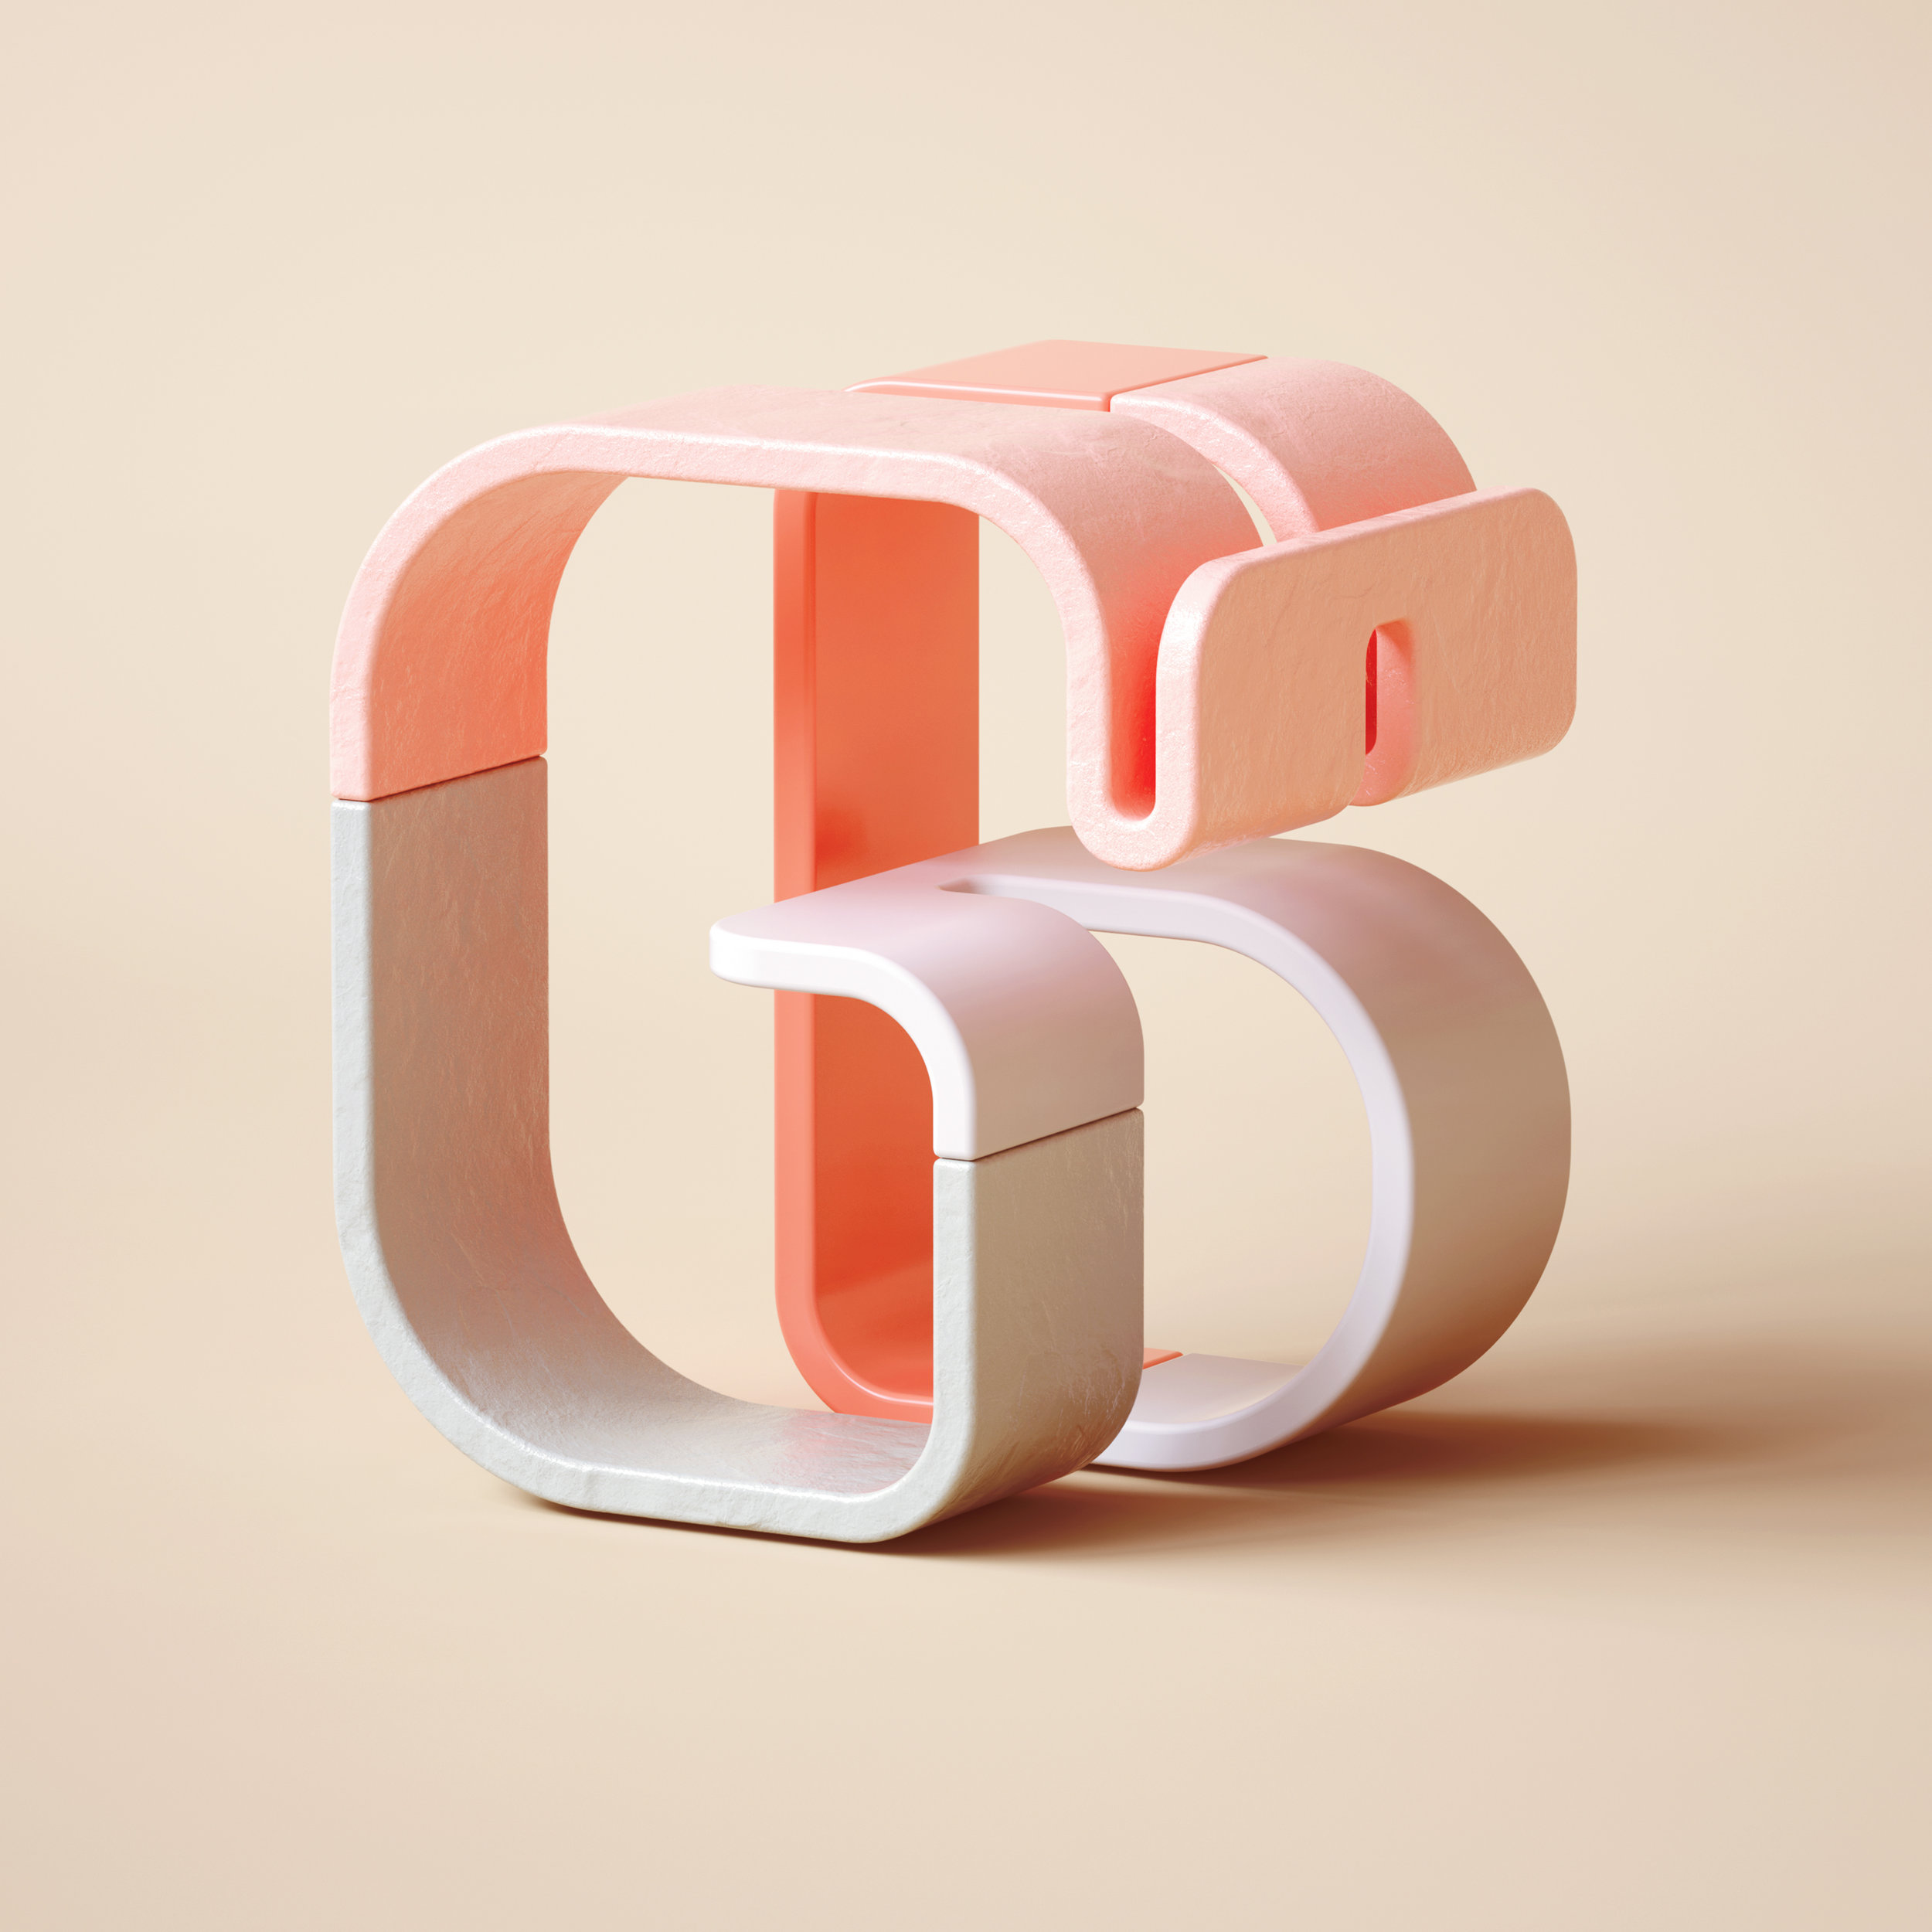 36 Days of Type 2019 - 3D Typeform number 6 visual.